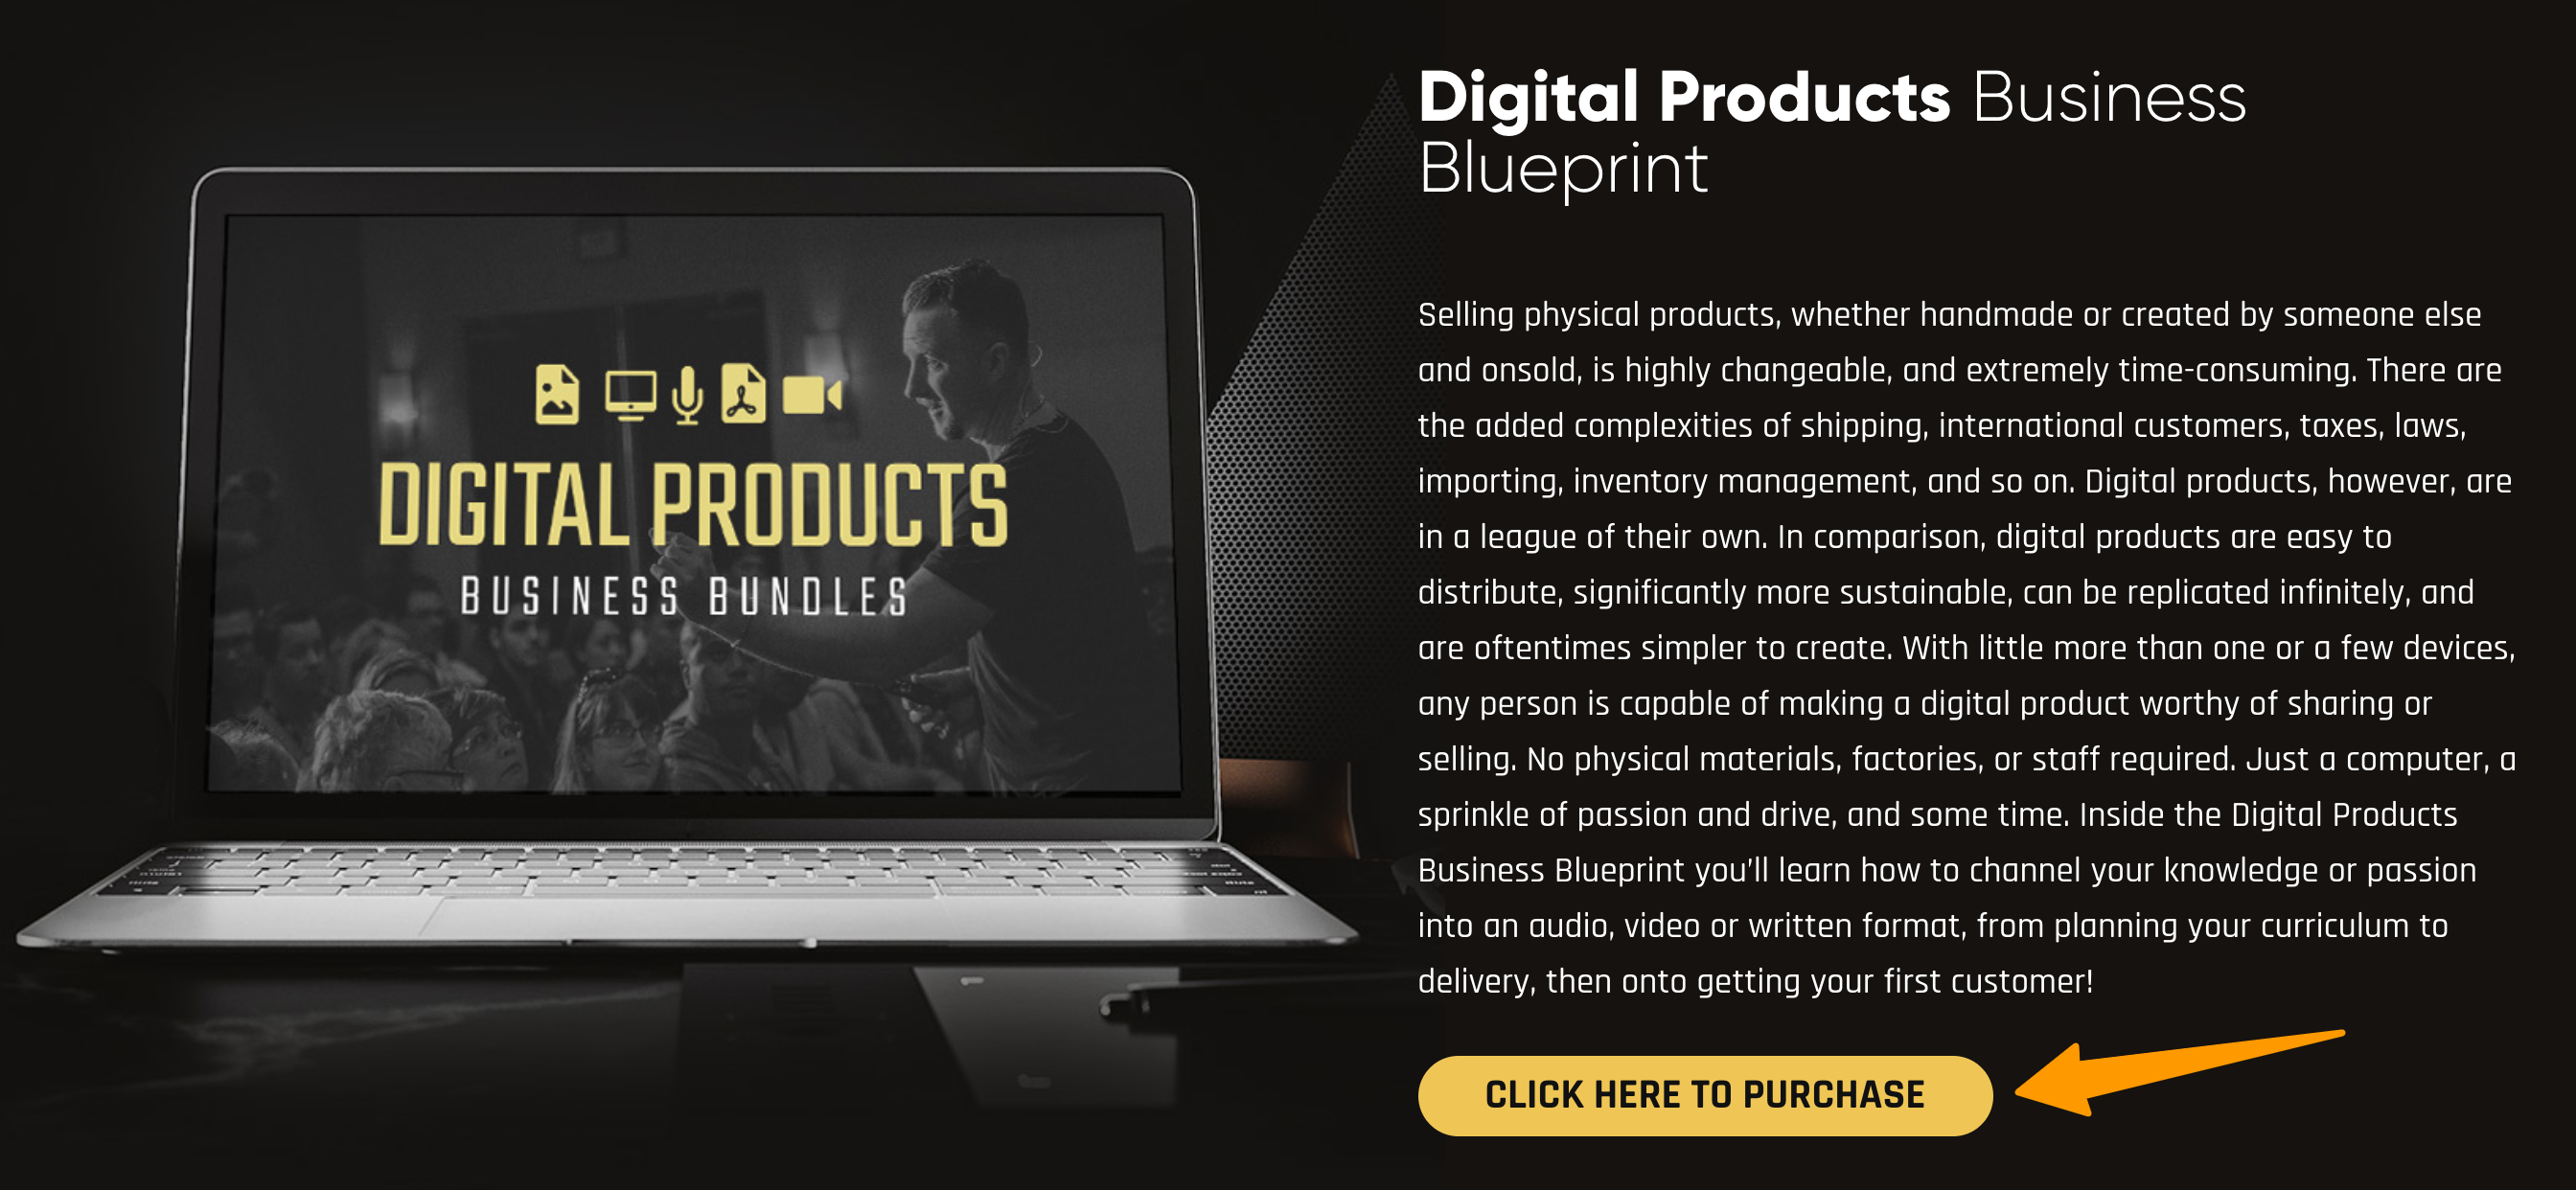 Products_Legendary_Marketer- Digital Products